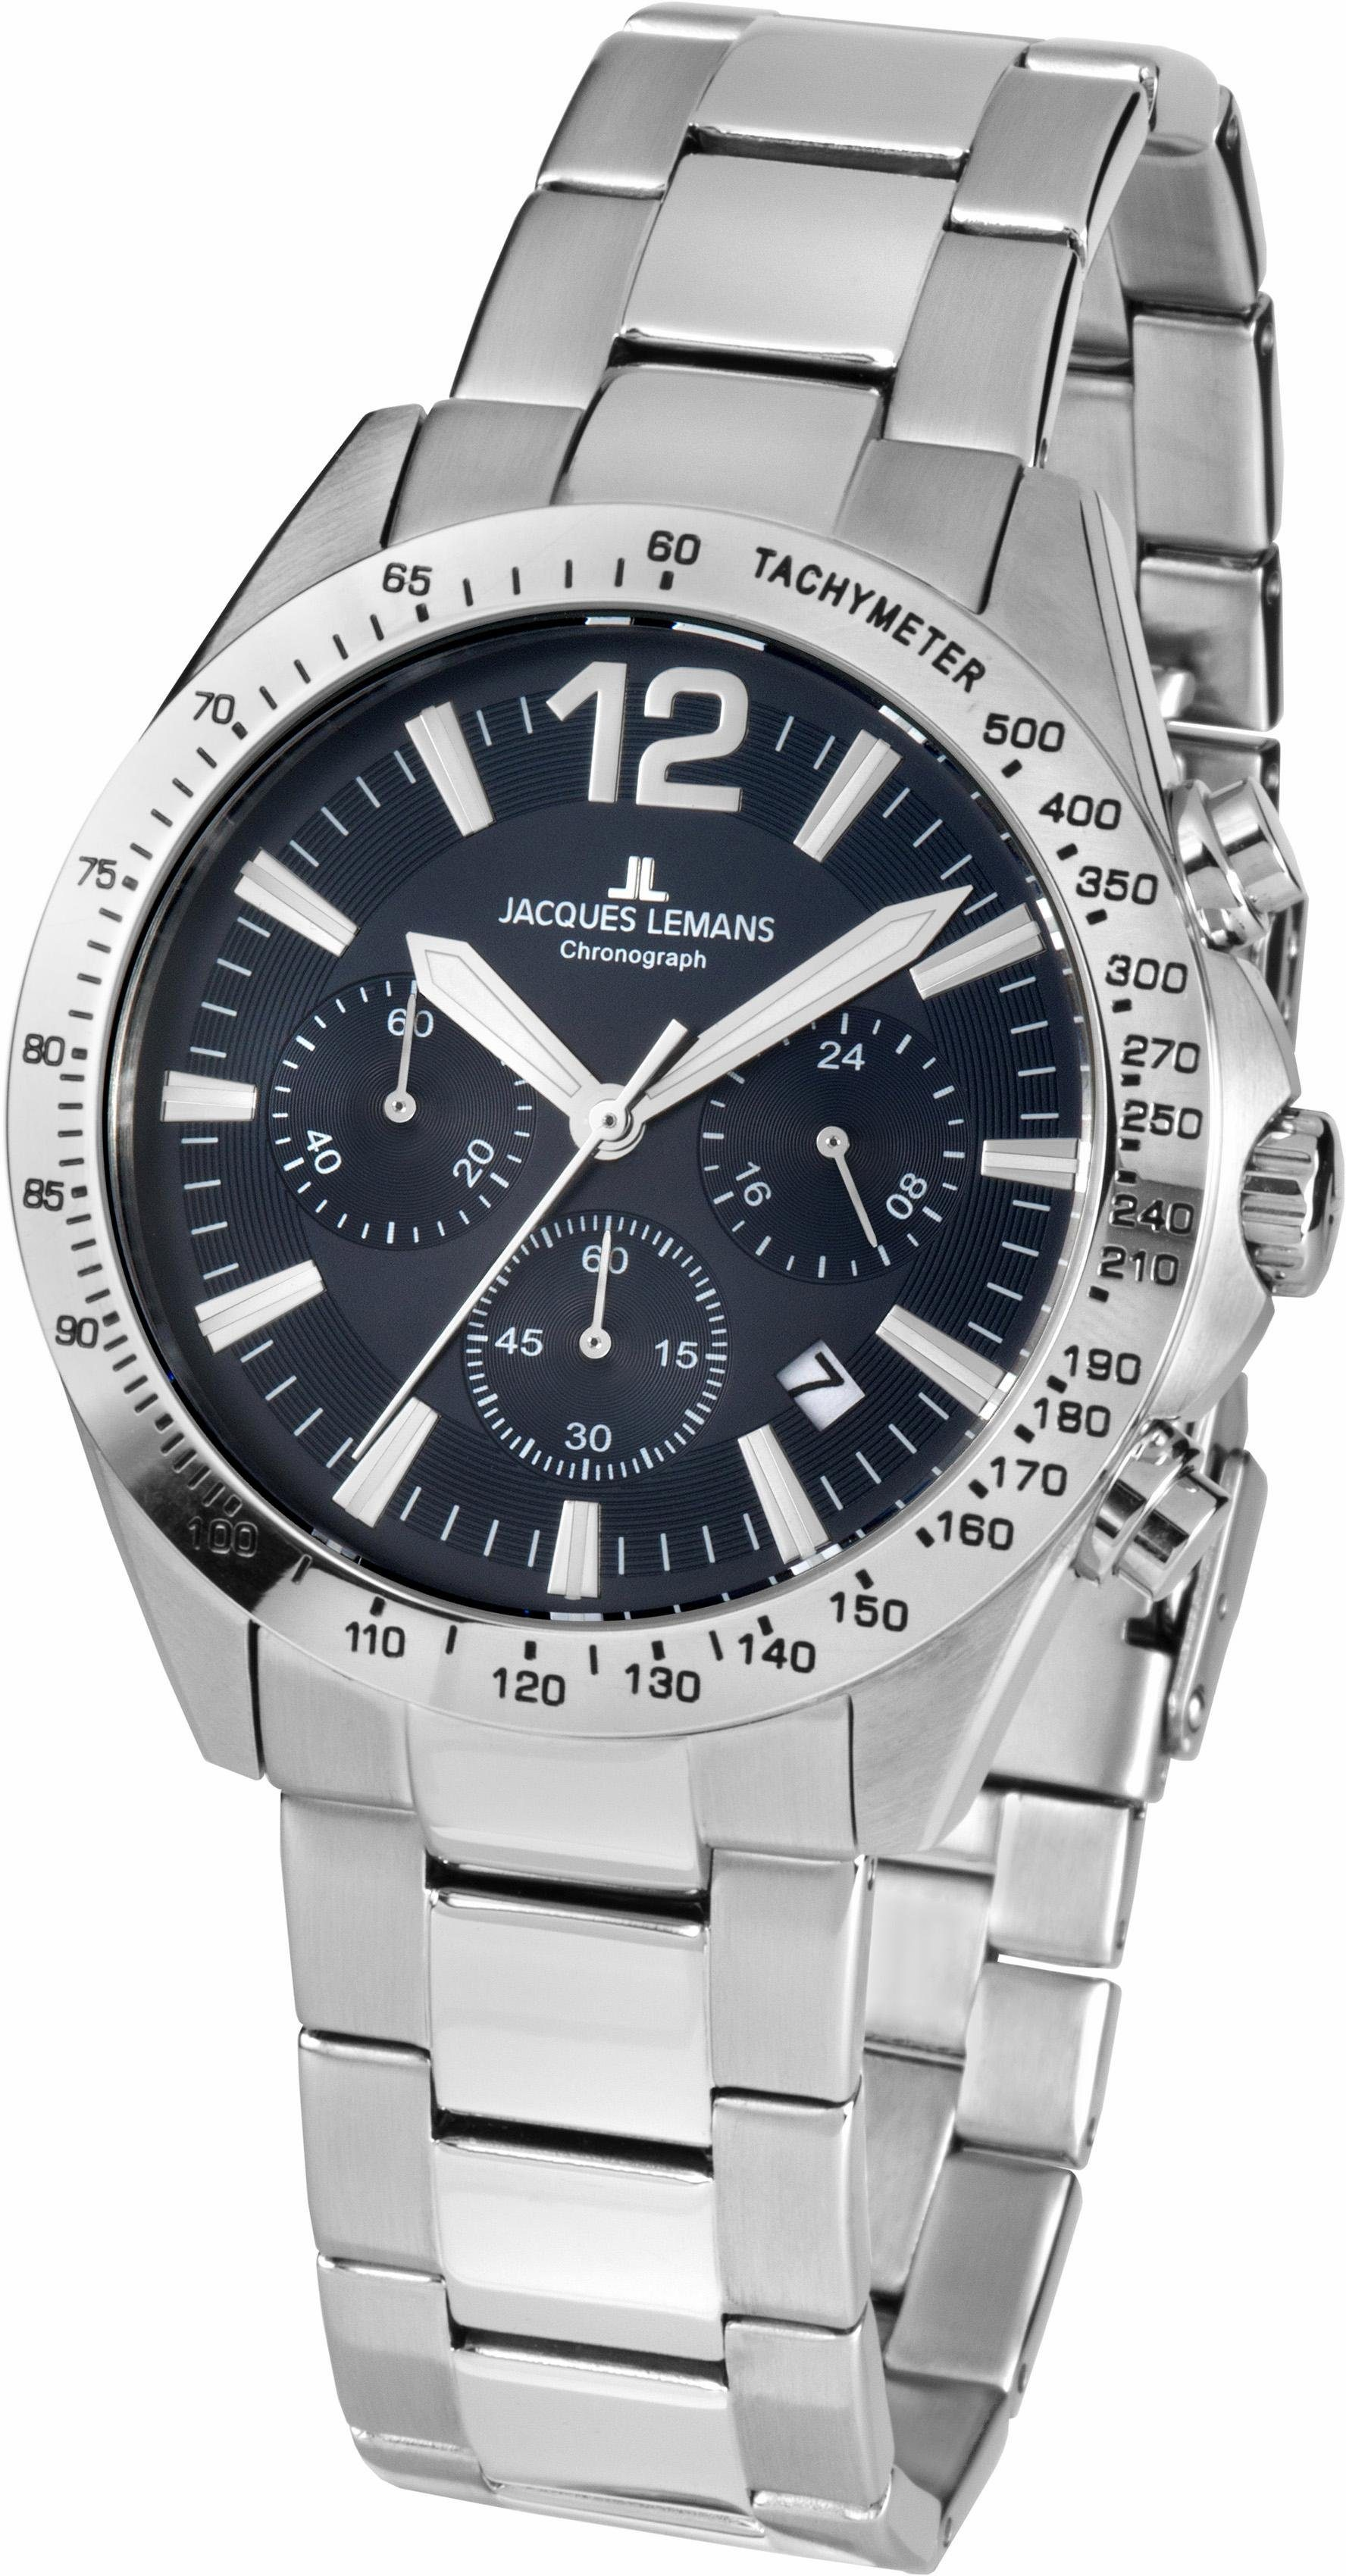 Jacques Lemans Sports Chronograph »Aktionsuhr, 42-5E«